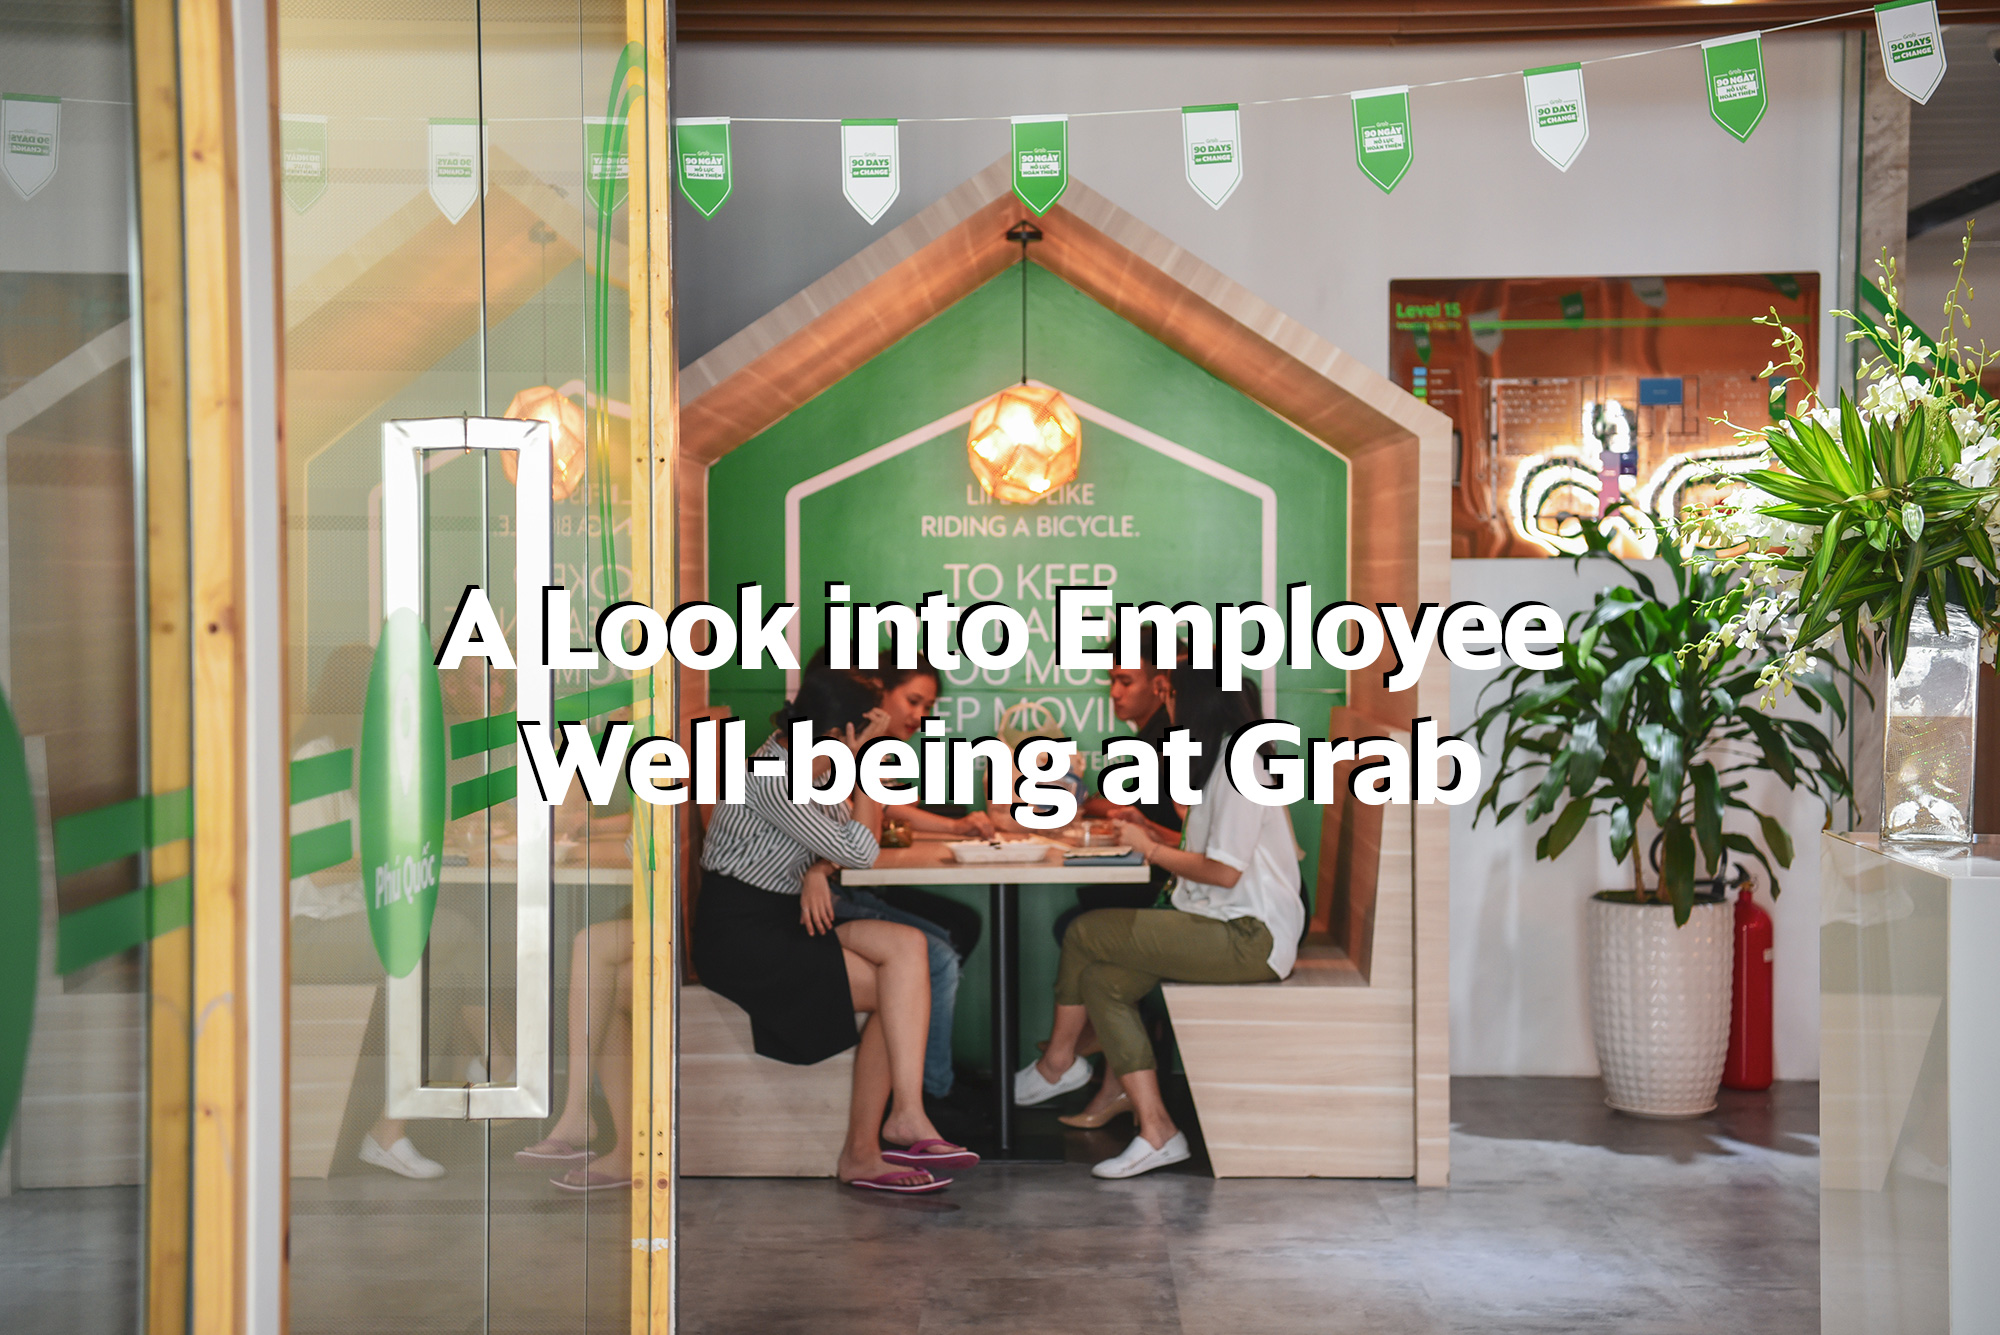 A Look into Employee Well-being